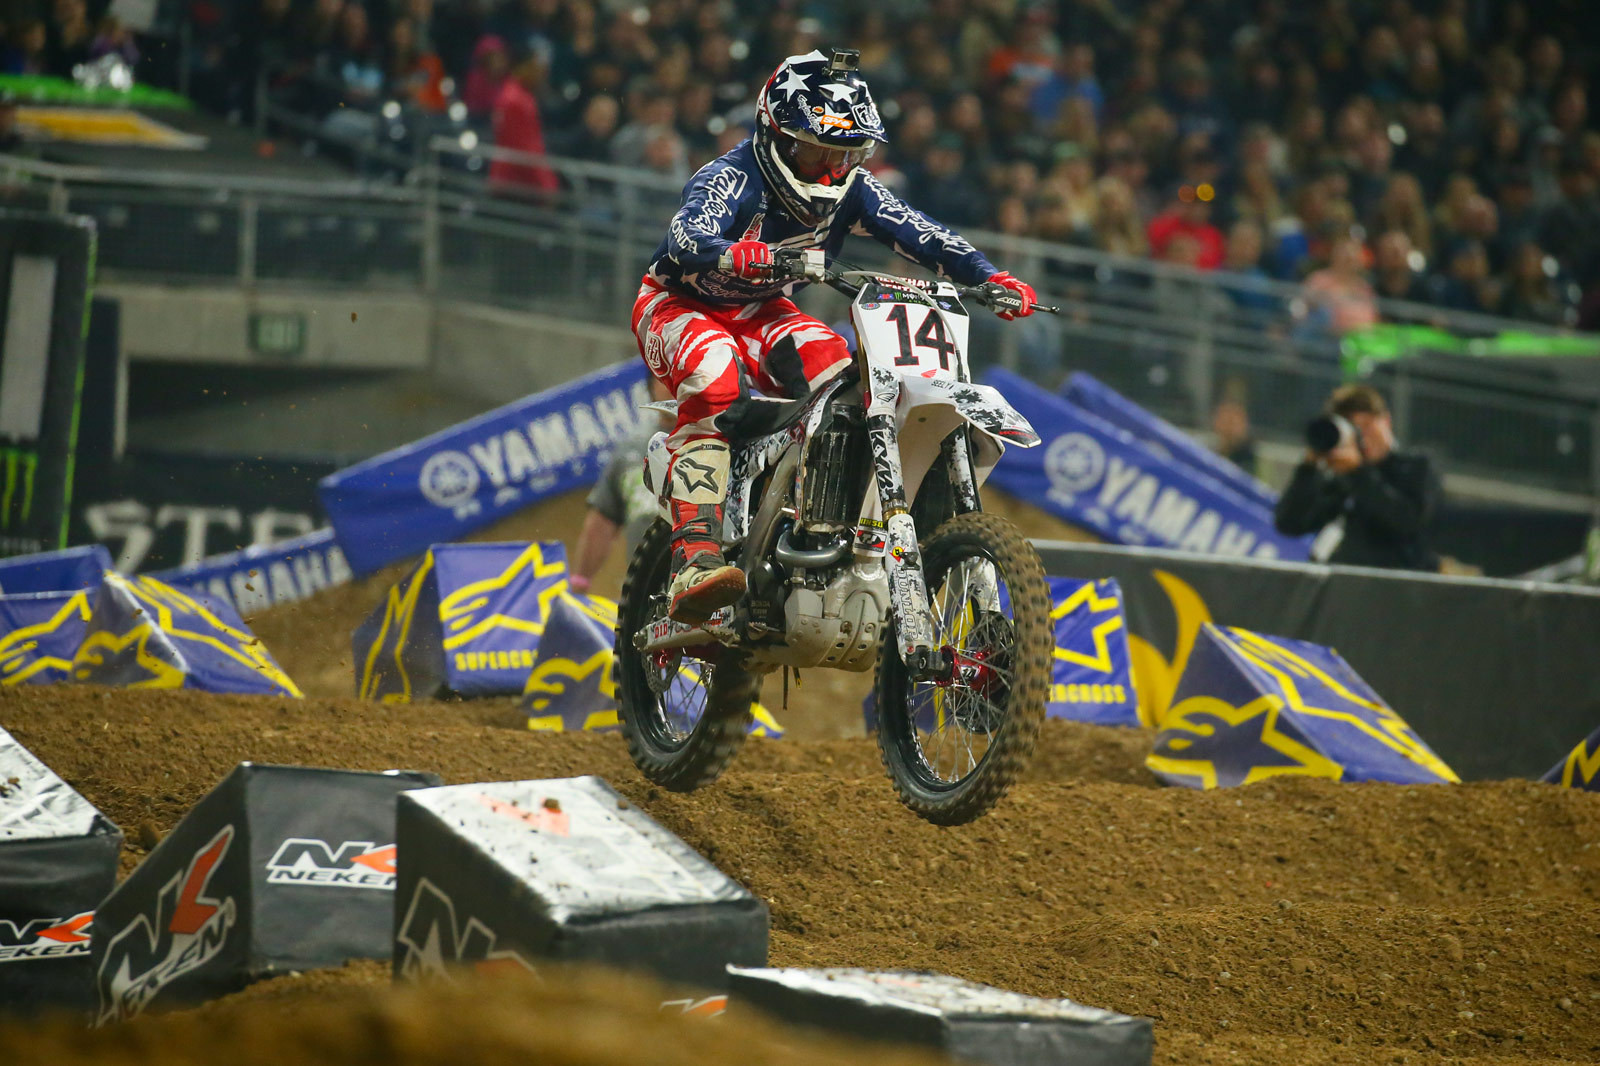 Cole Seely - Photo Blast: San Diego 2 - Motocross Pictures - Vital MX